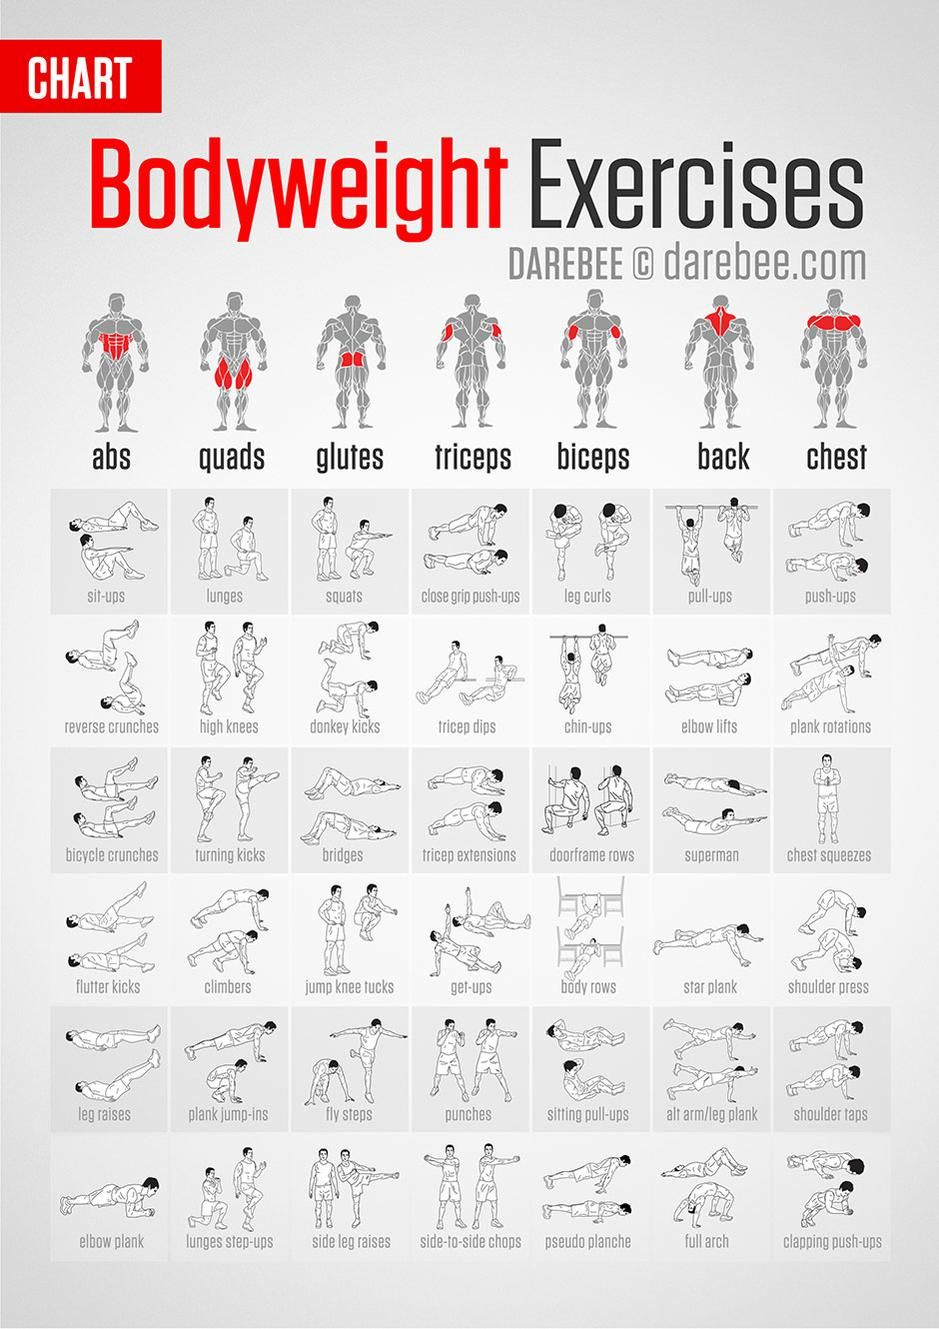 Darebee On Exercises Pinterest Exercise Chart Exercises And Chart